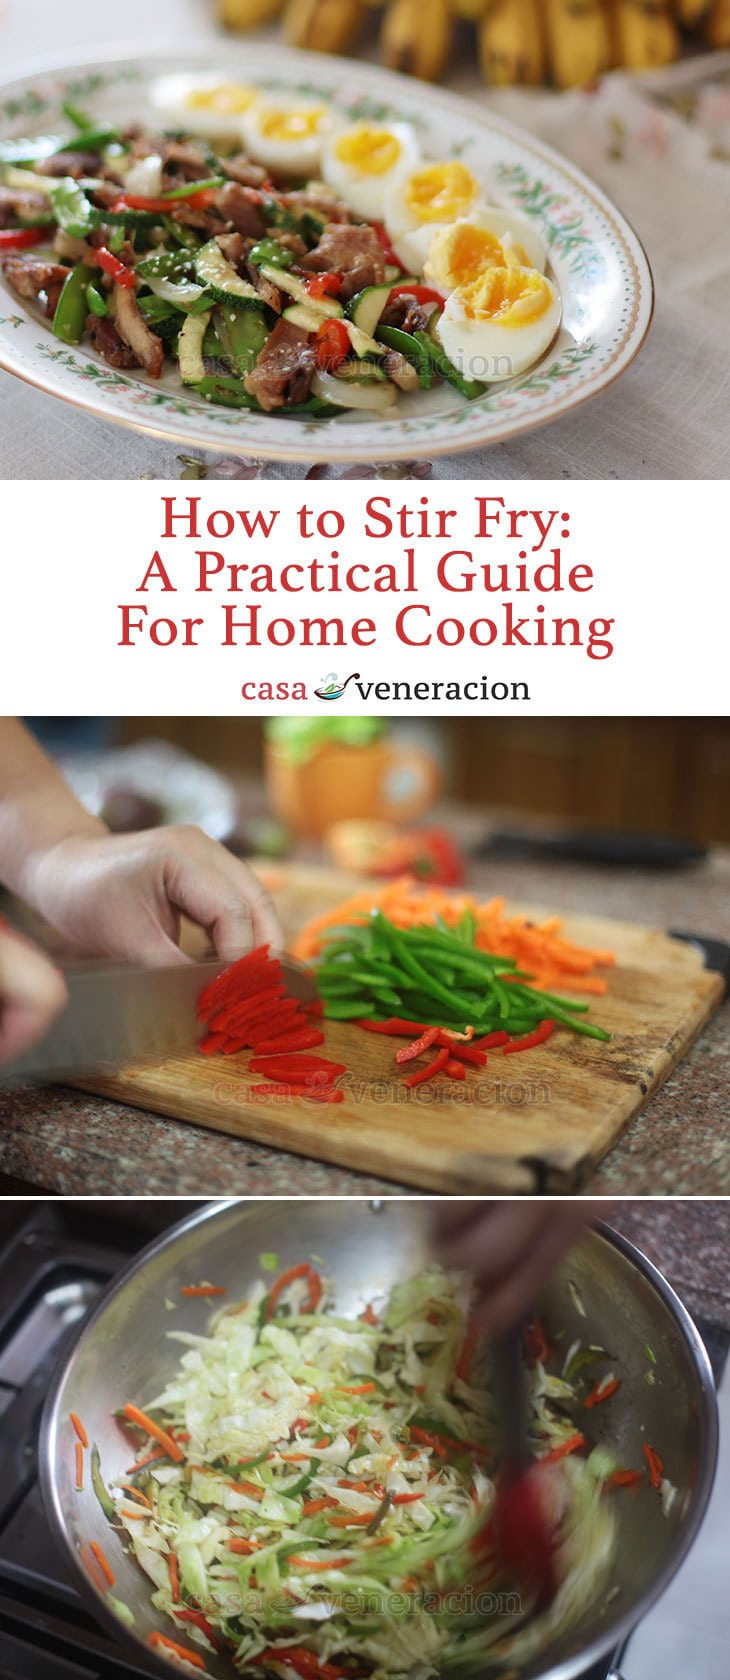 How to Stir Fry: A Practical Guide For Home Cooking - Just because a dish is cooked in a wok doesn't automatically make it a stir fry. Stir frying is a cooking method by which similarly sized ingredients are cooked for a short time over intensely high heat.